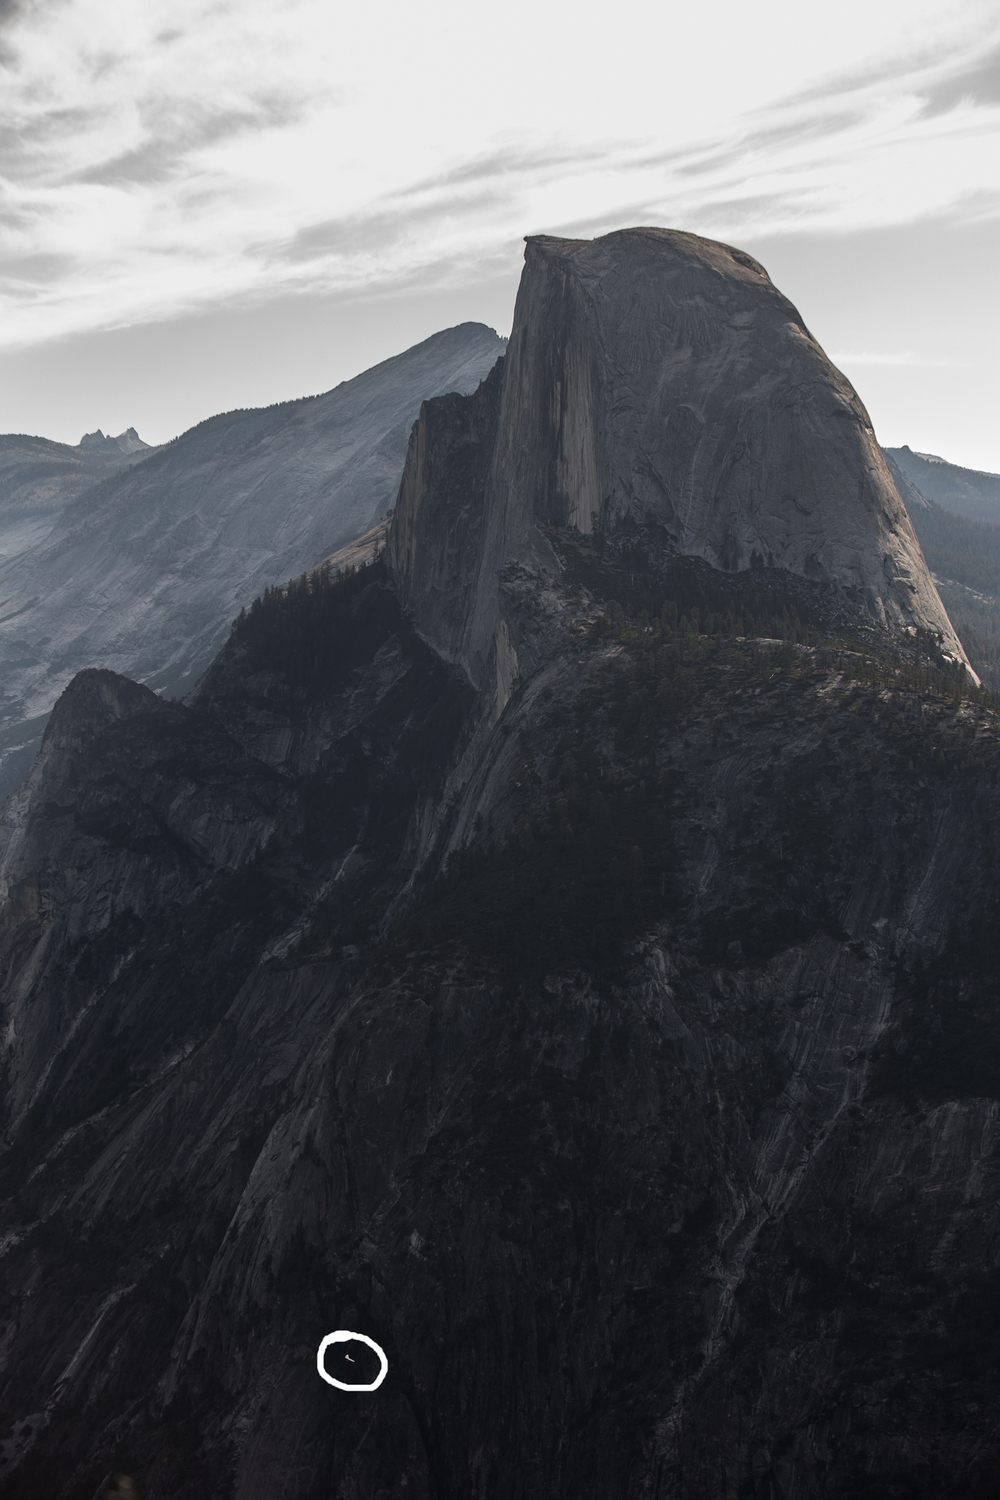 Here I circled the hang glider next to Half Dome. Talk about perspective!